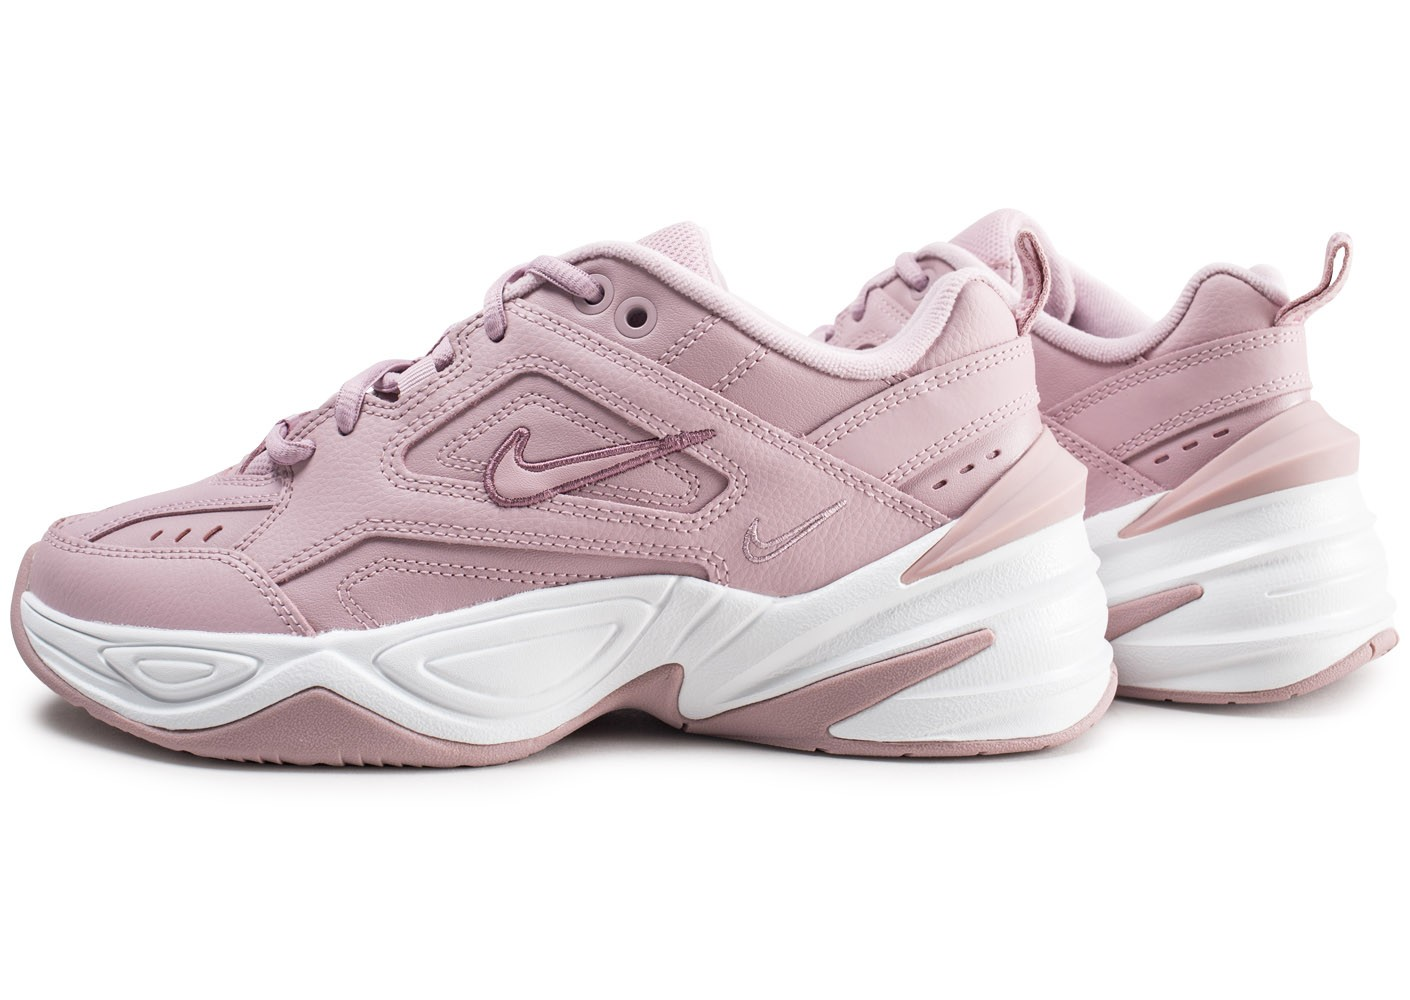 Nike M2K Tekno rose femme - Chaussures Baskets femme - Chausport